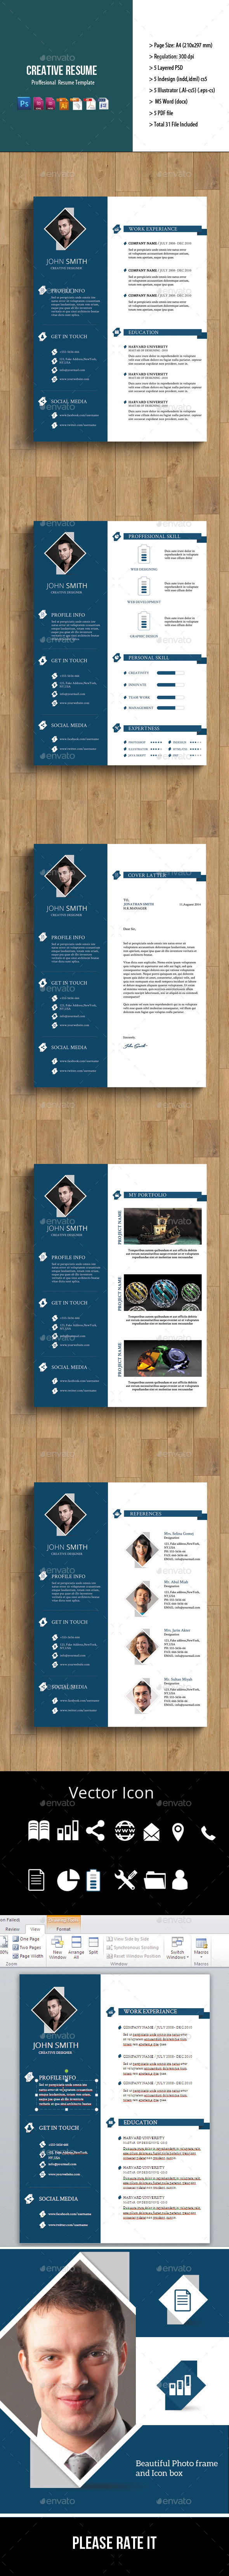 GraphicRiver 5 Page Creative Resume 8891832